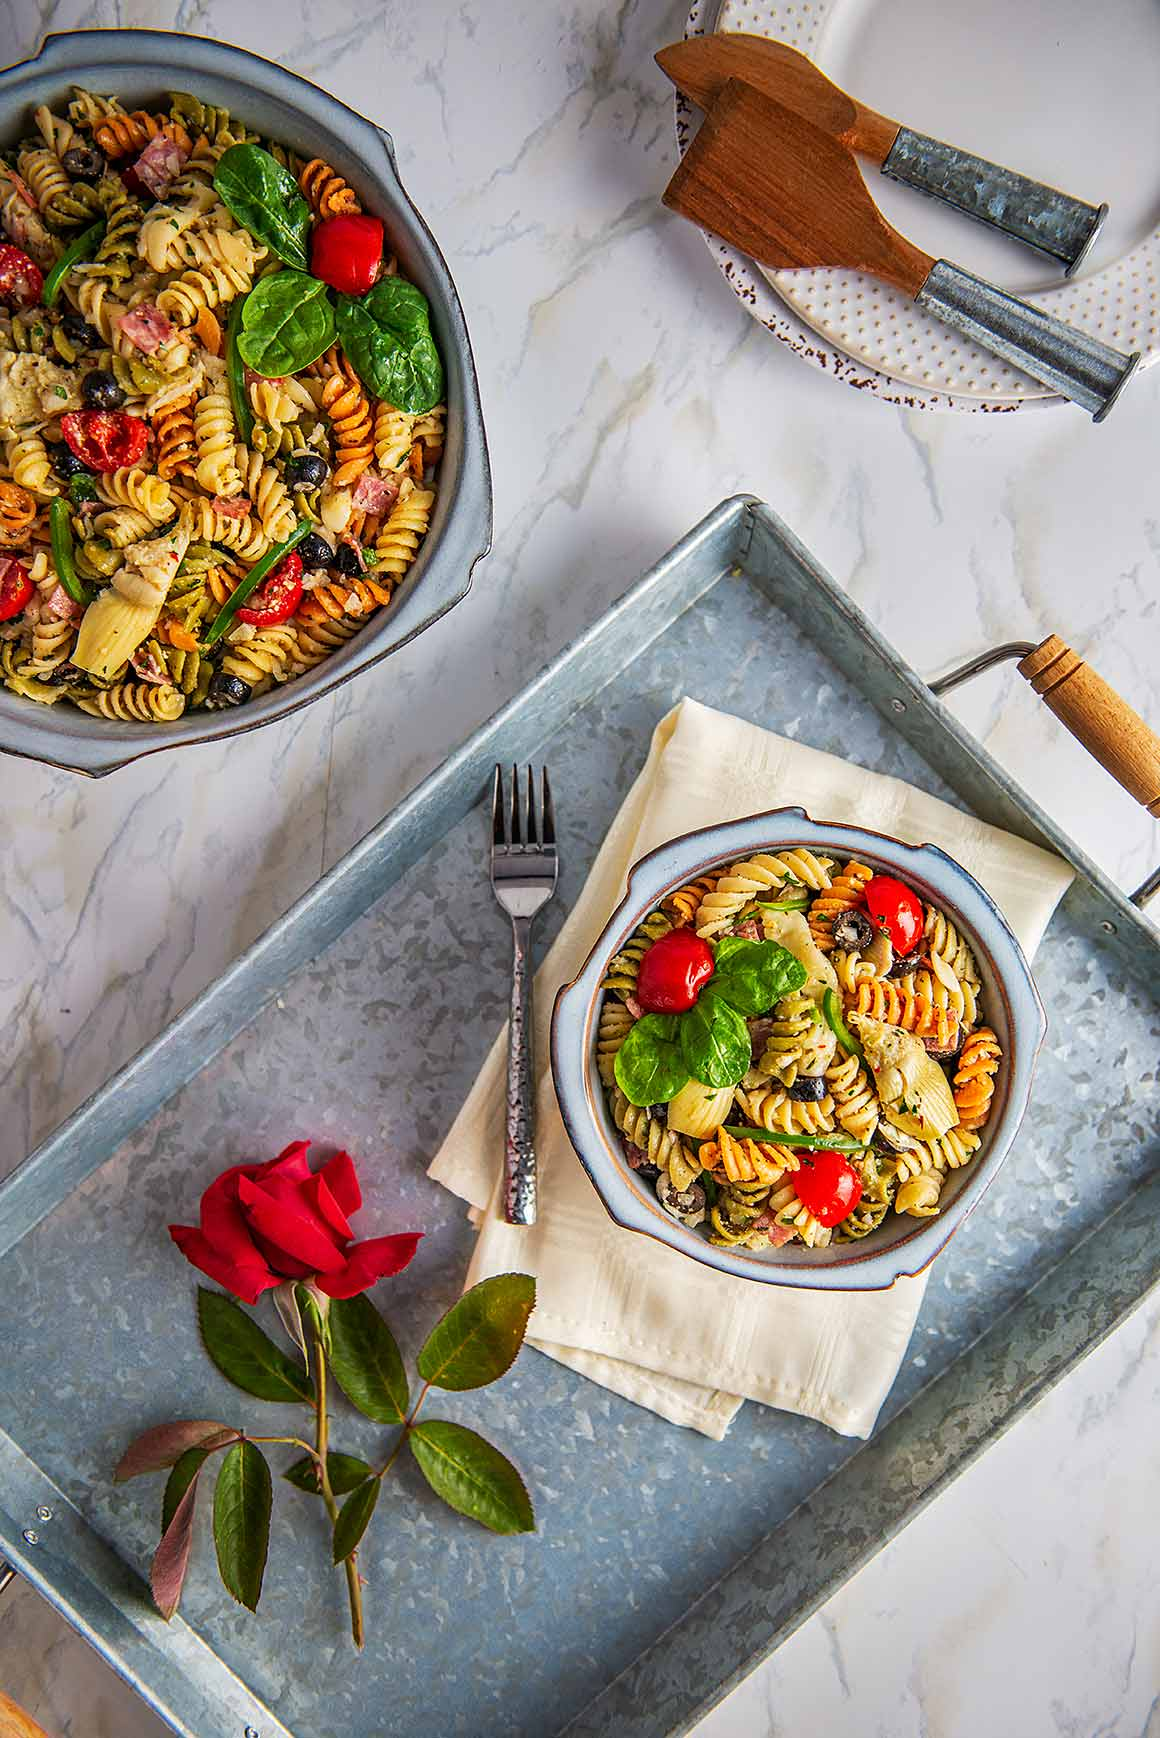 Serving tray with soup bowl of pasta salad, fork, napkin and a rose sitting on a marble table with a large serving bowl of pasta salad and serving spoons.